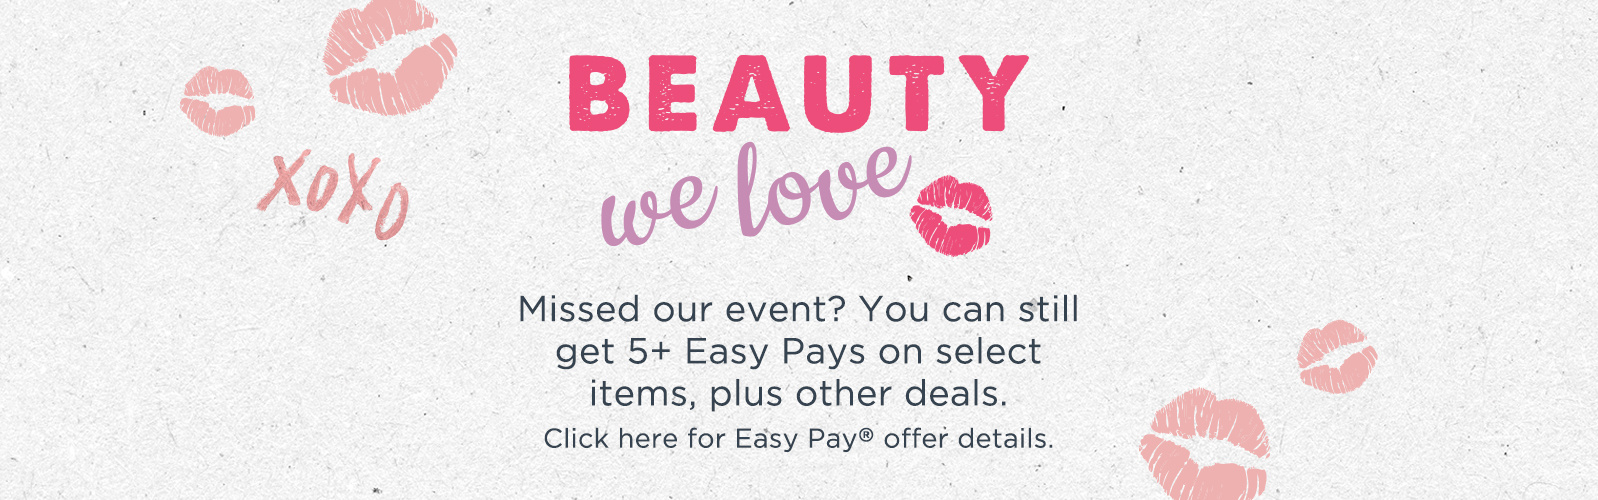 Beauty We Love. Missed our event? You can still get 5+ Easy Pays on select items, plus other deals. Click here for Easy Pay® offer details.